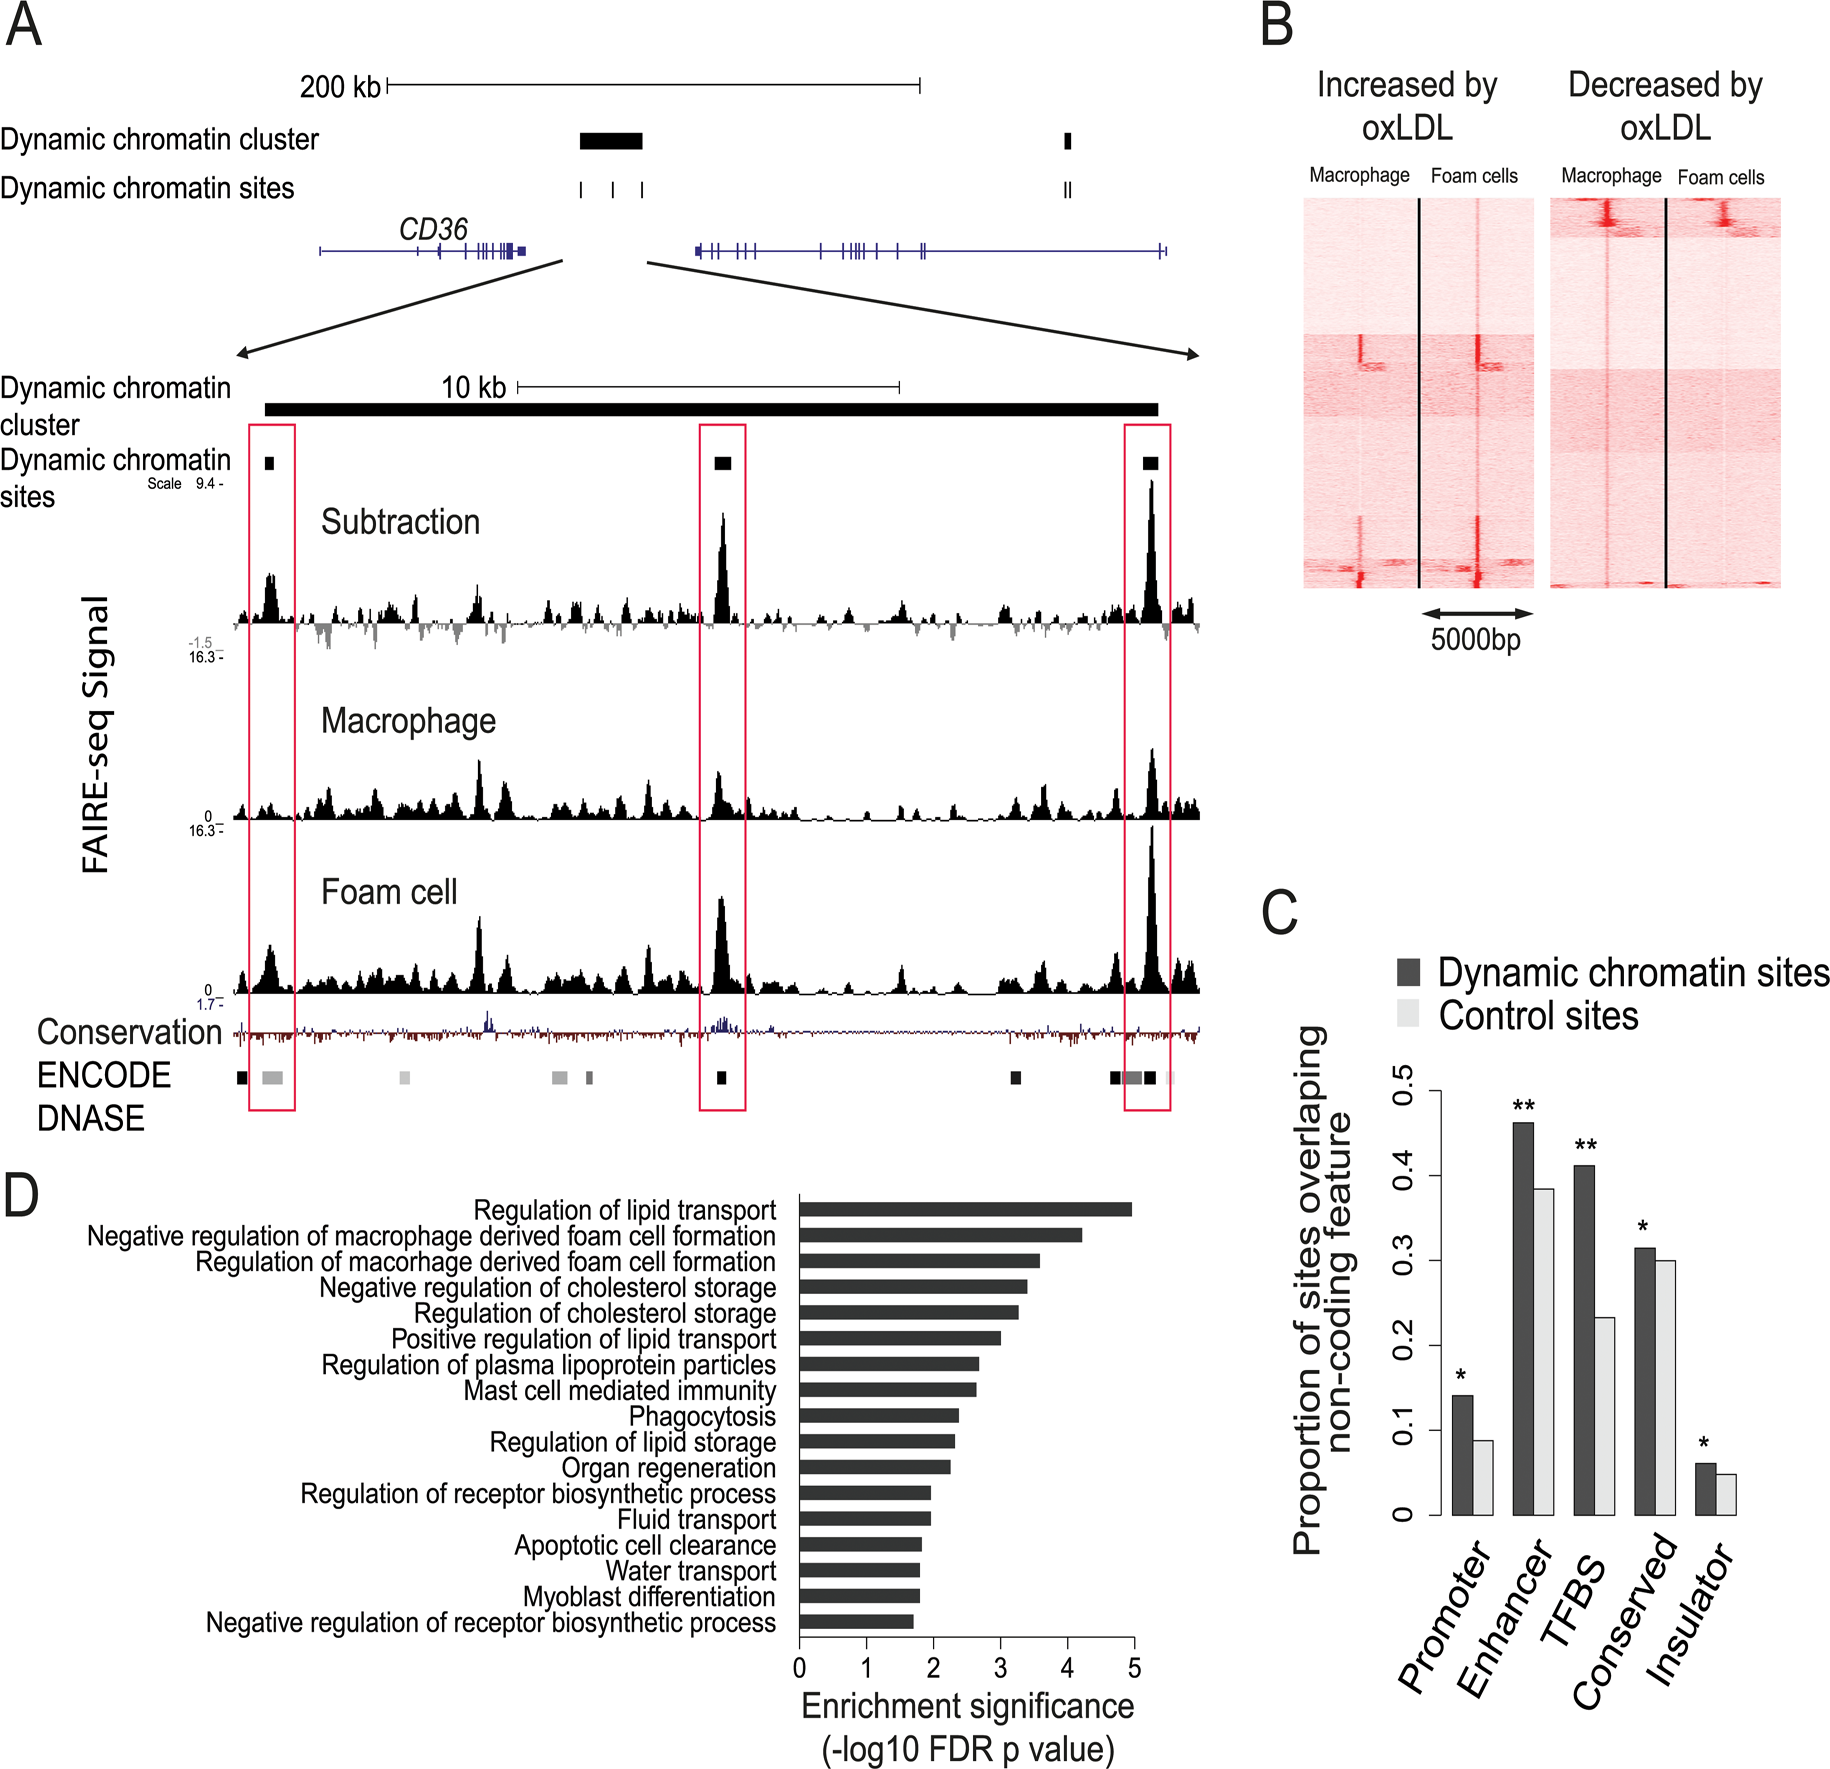 Characterization of the dynamic chromatin landscape resulting from oxLDL exposure.